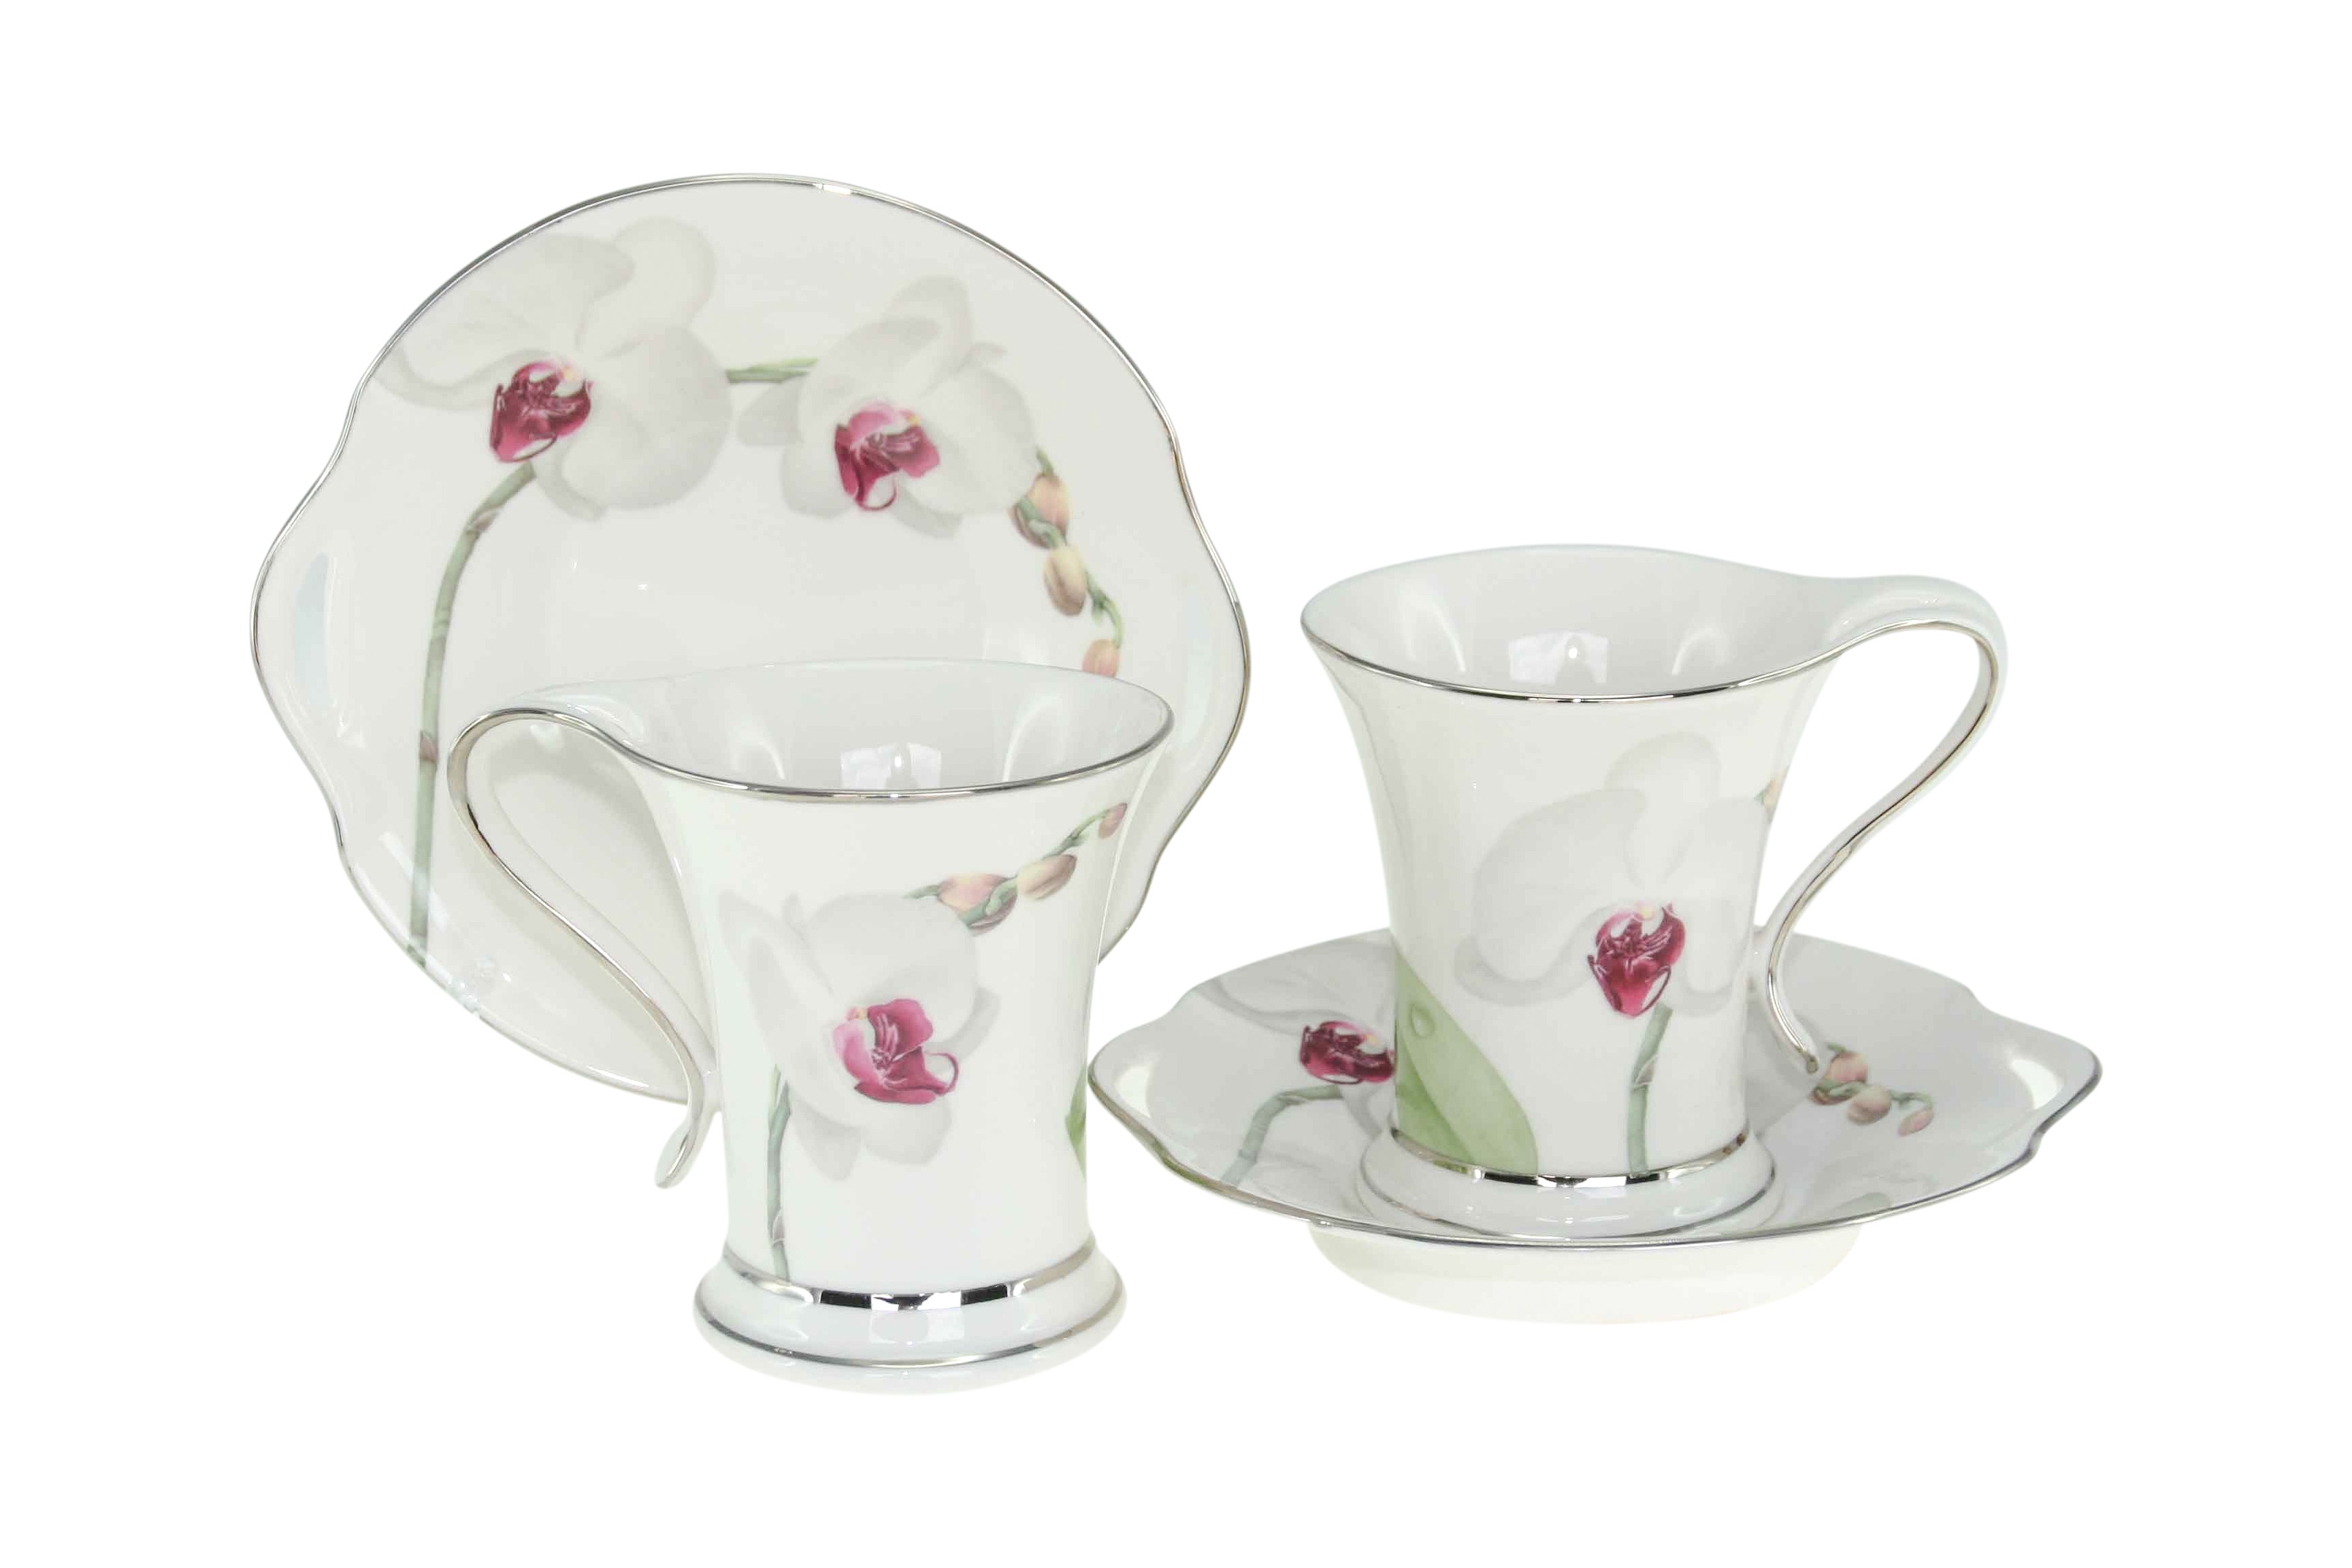 White Flower 2 Cup & Saucers Set